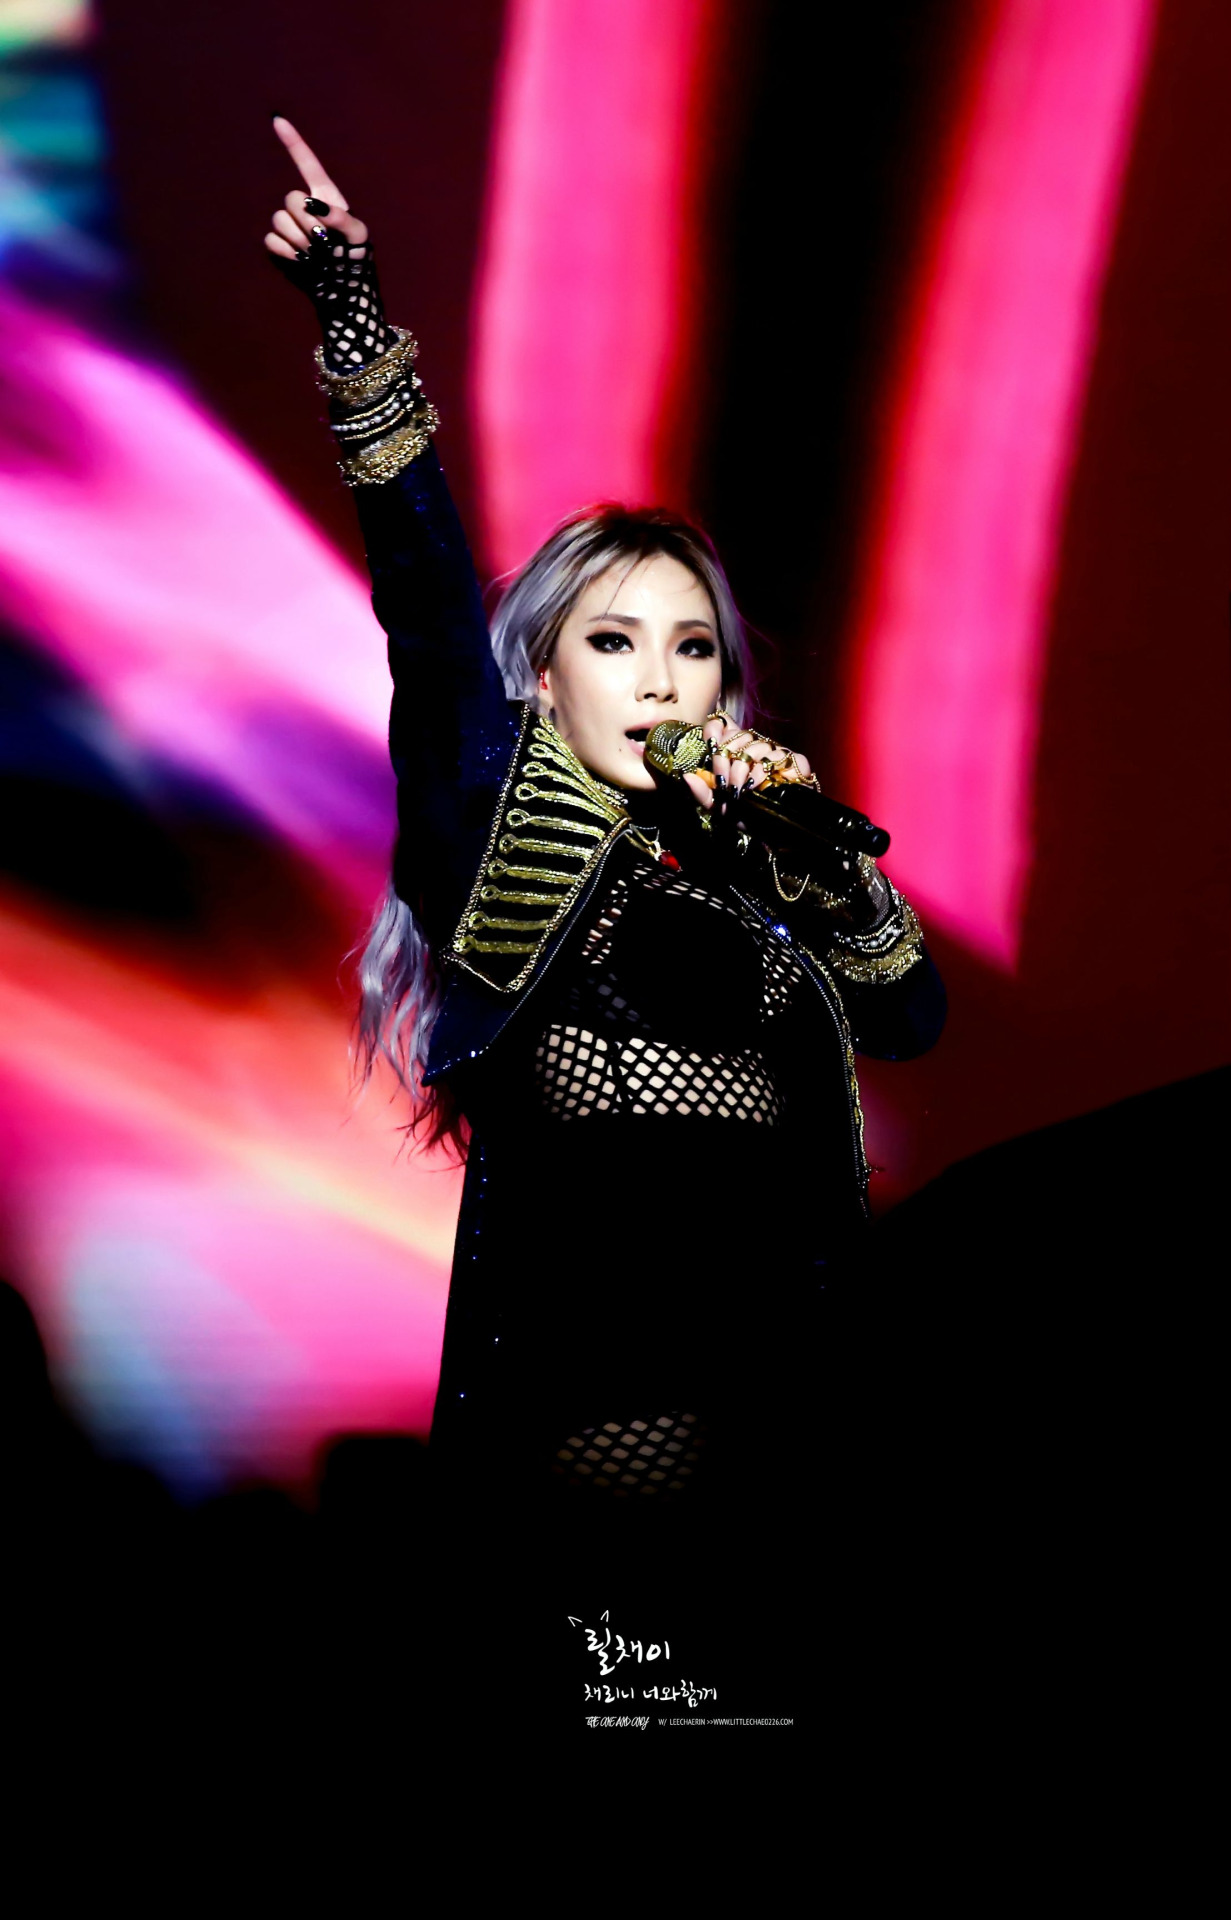 Cl Android Iphone Wallpaper 38860 Asiachan Kpop Image Board